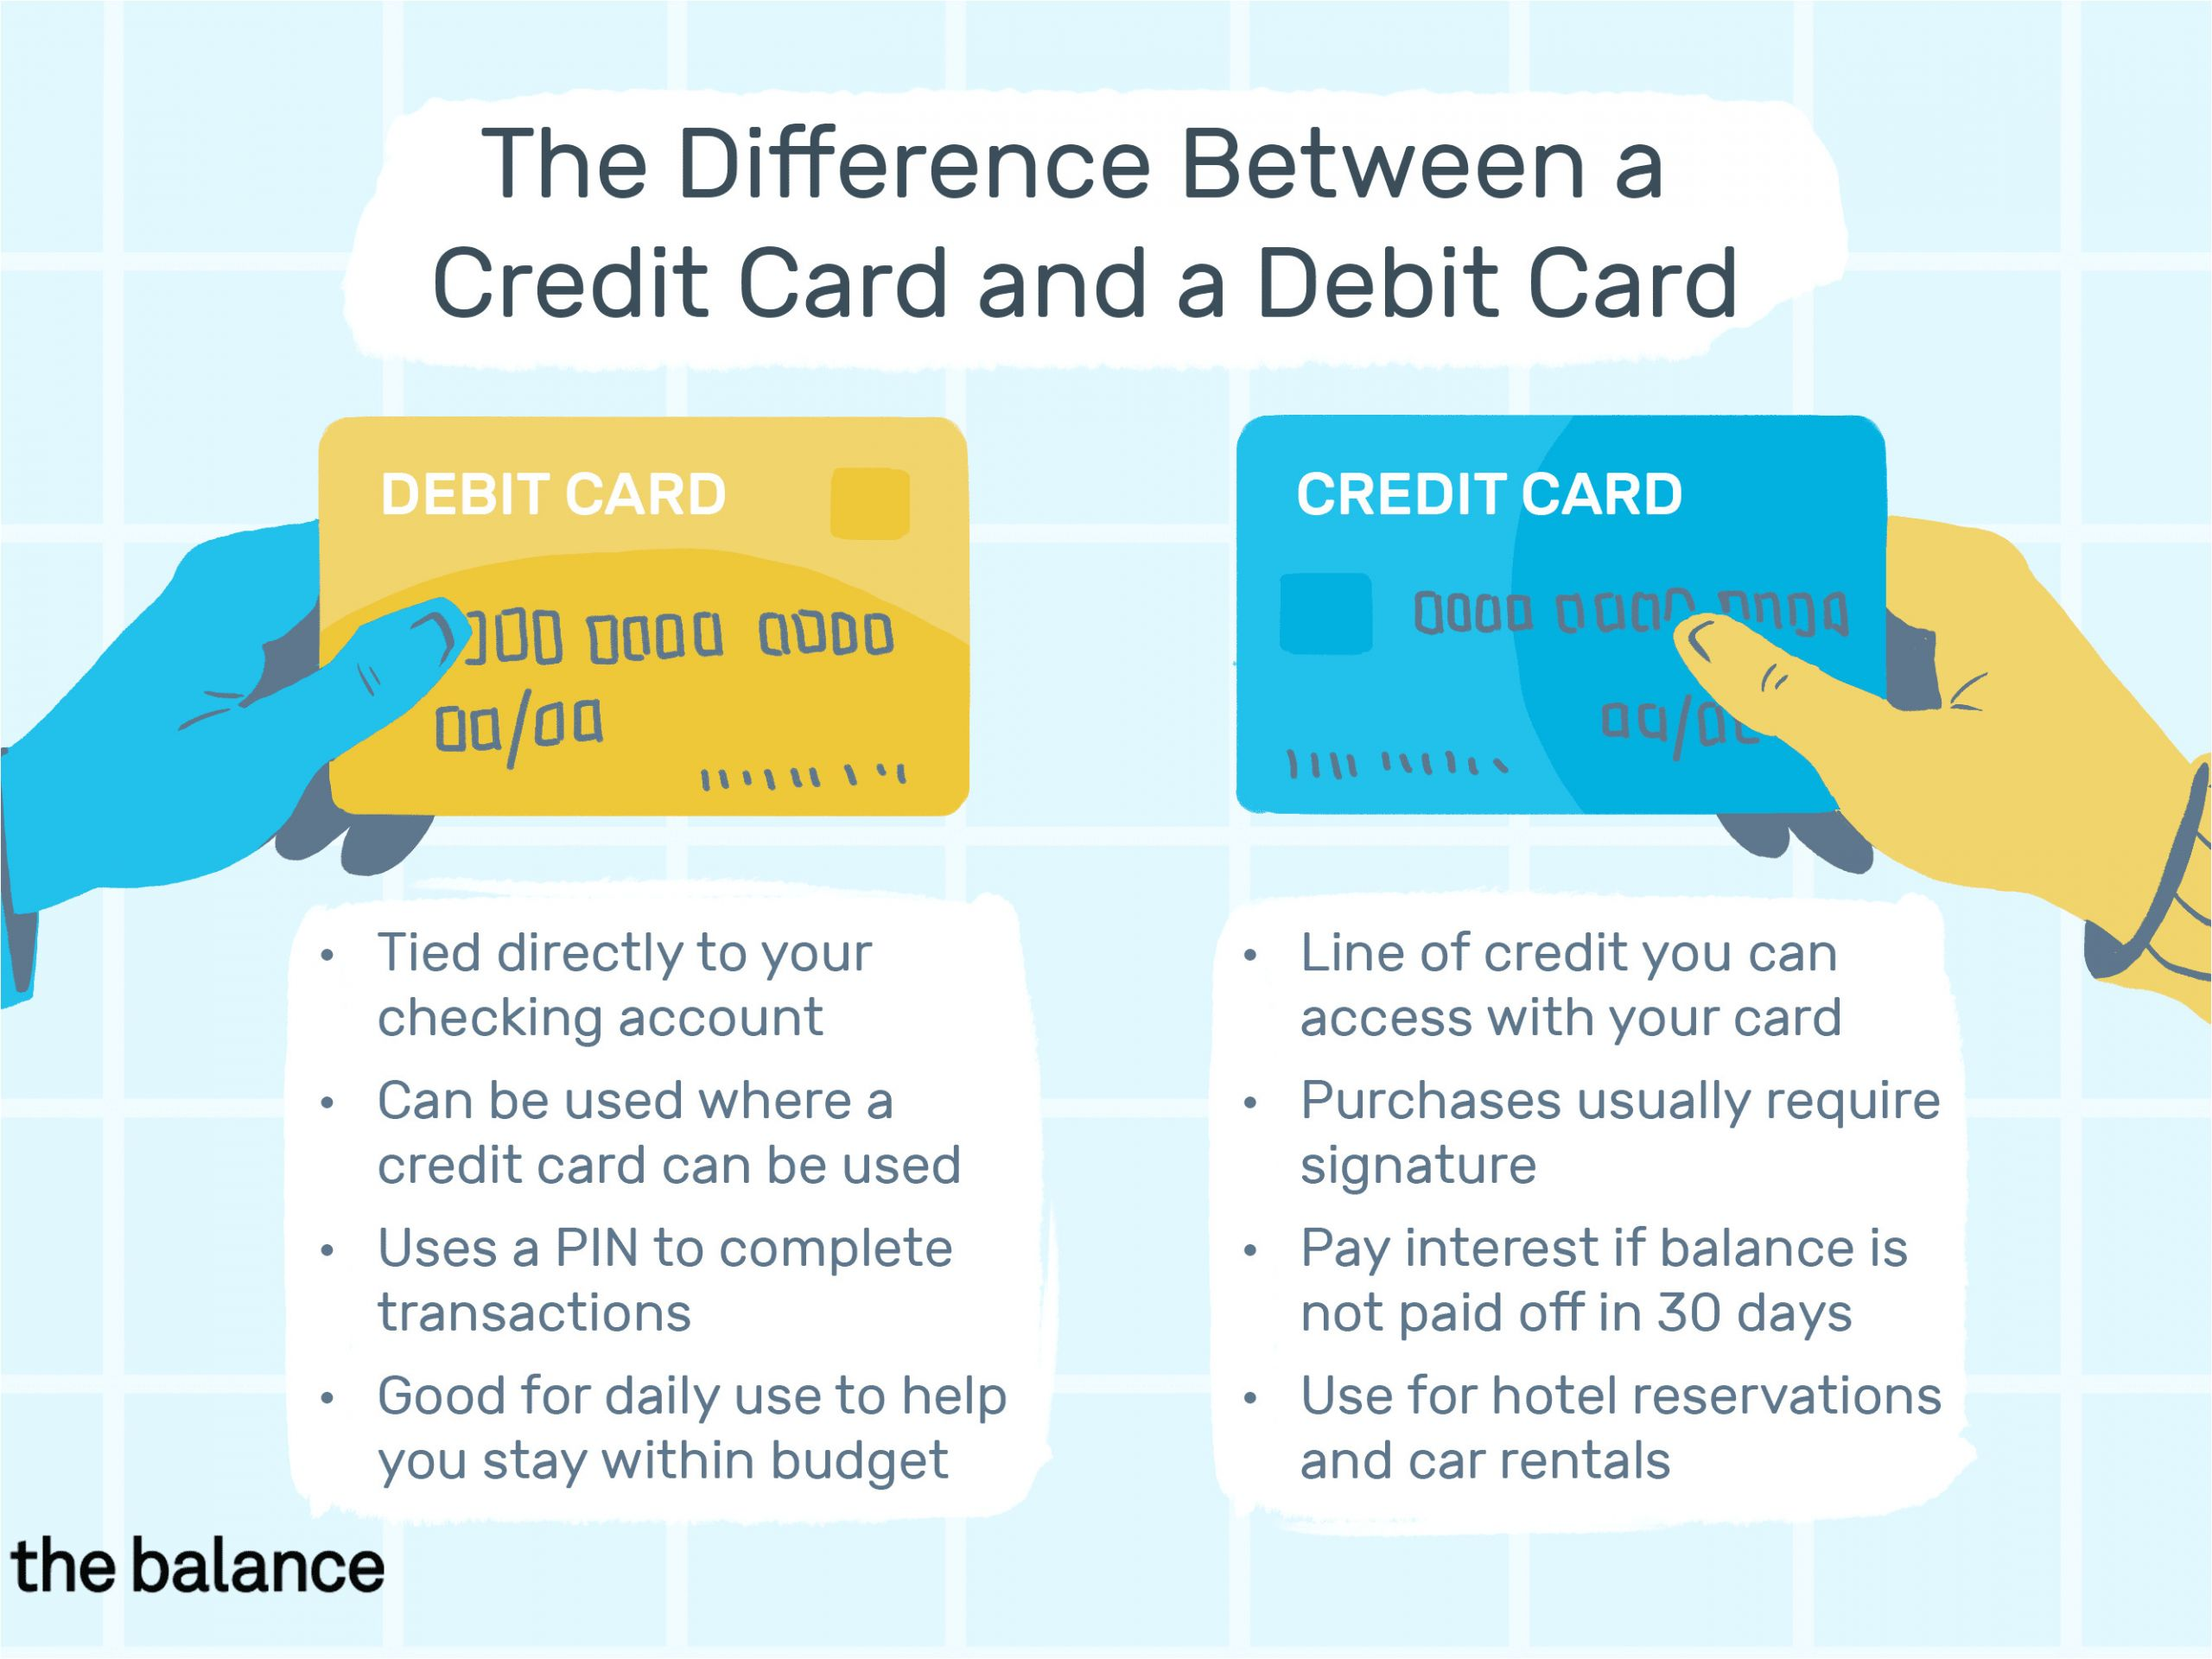 difference between a credit card and a debit card 2385972 final 5c4731cbc9e77c00018a49e9 png